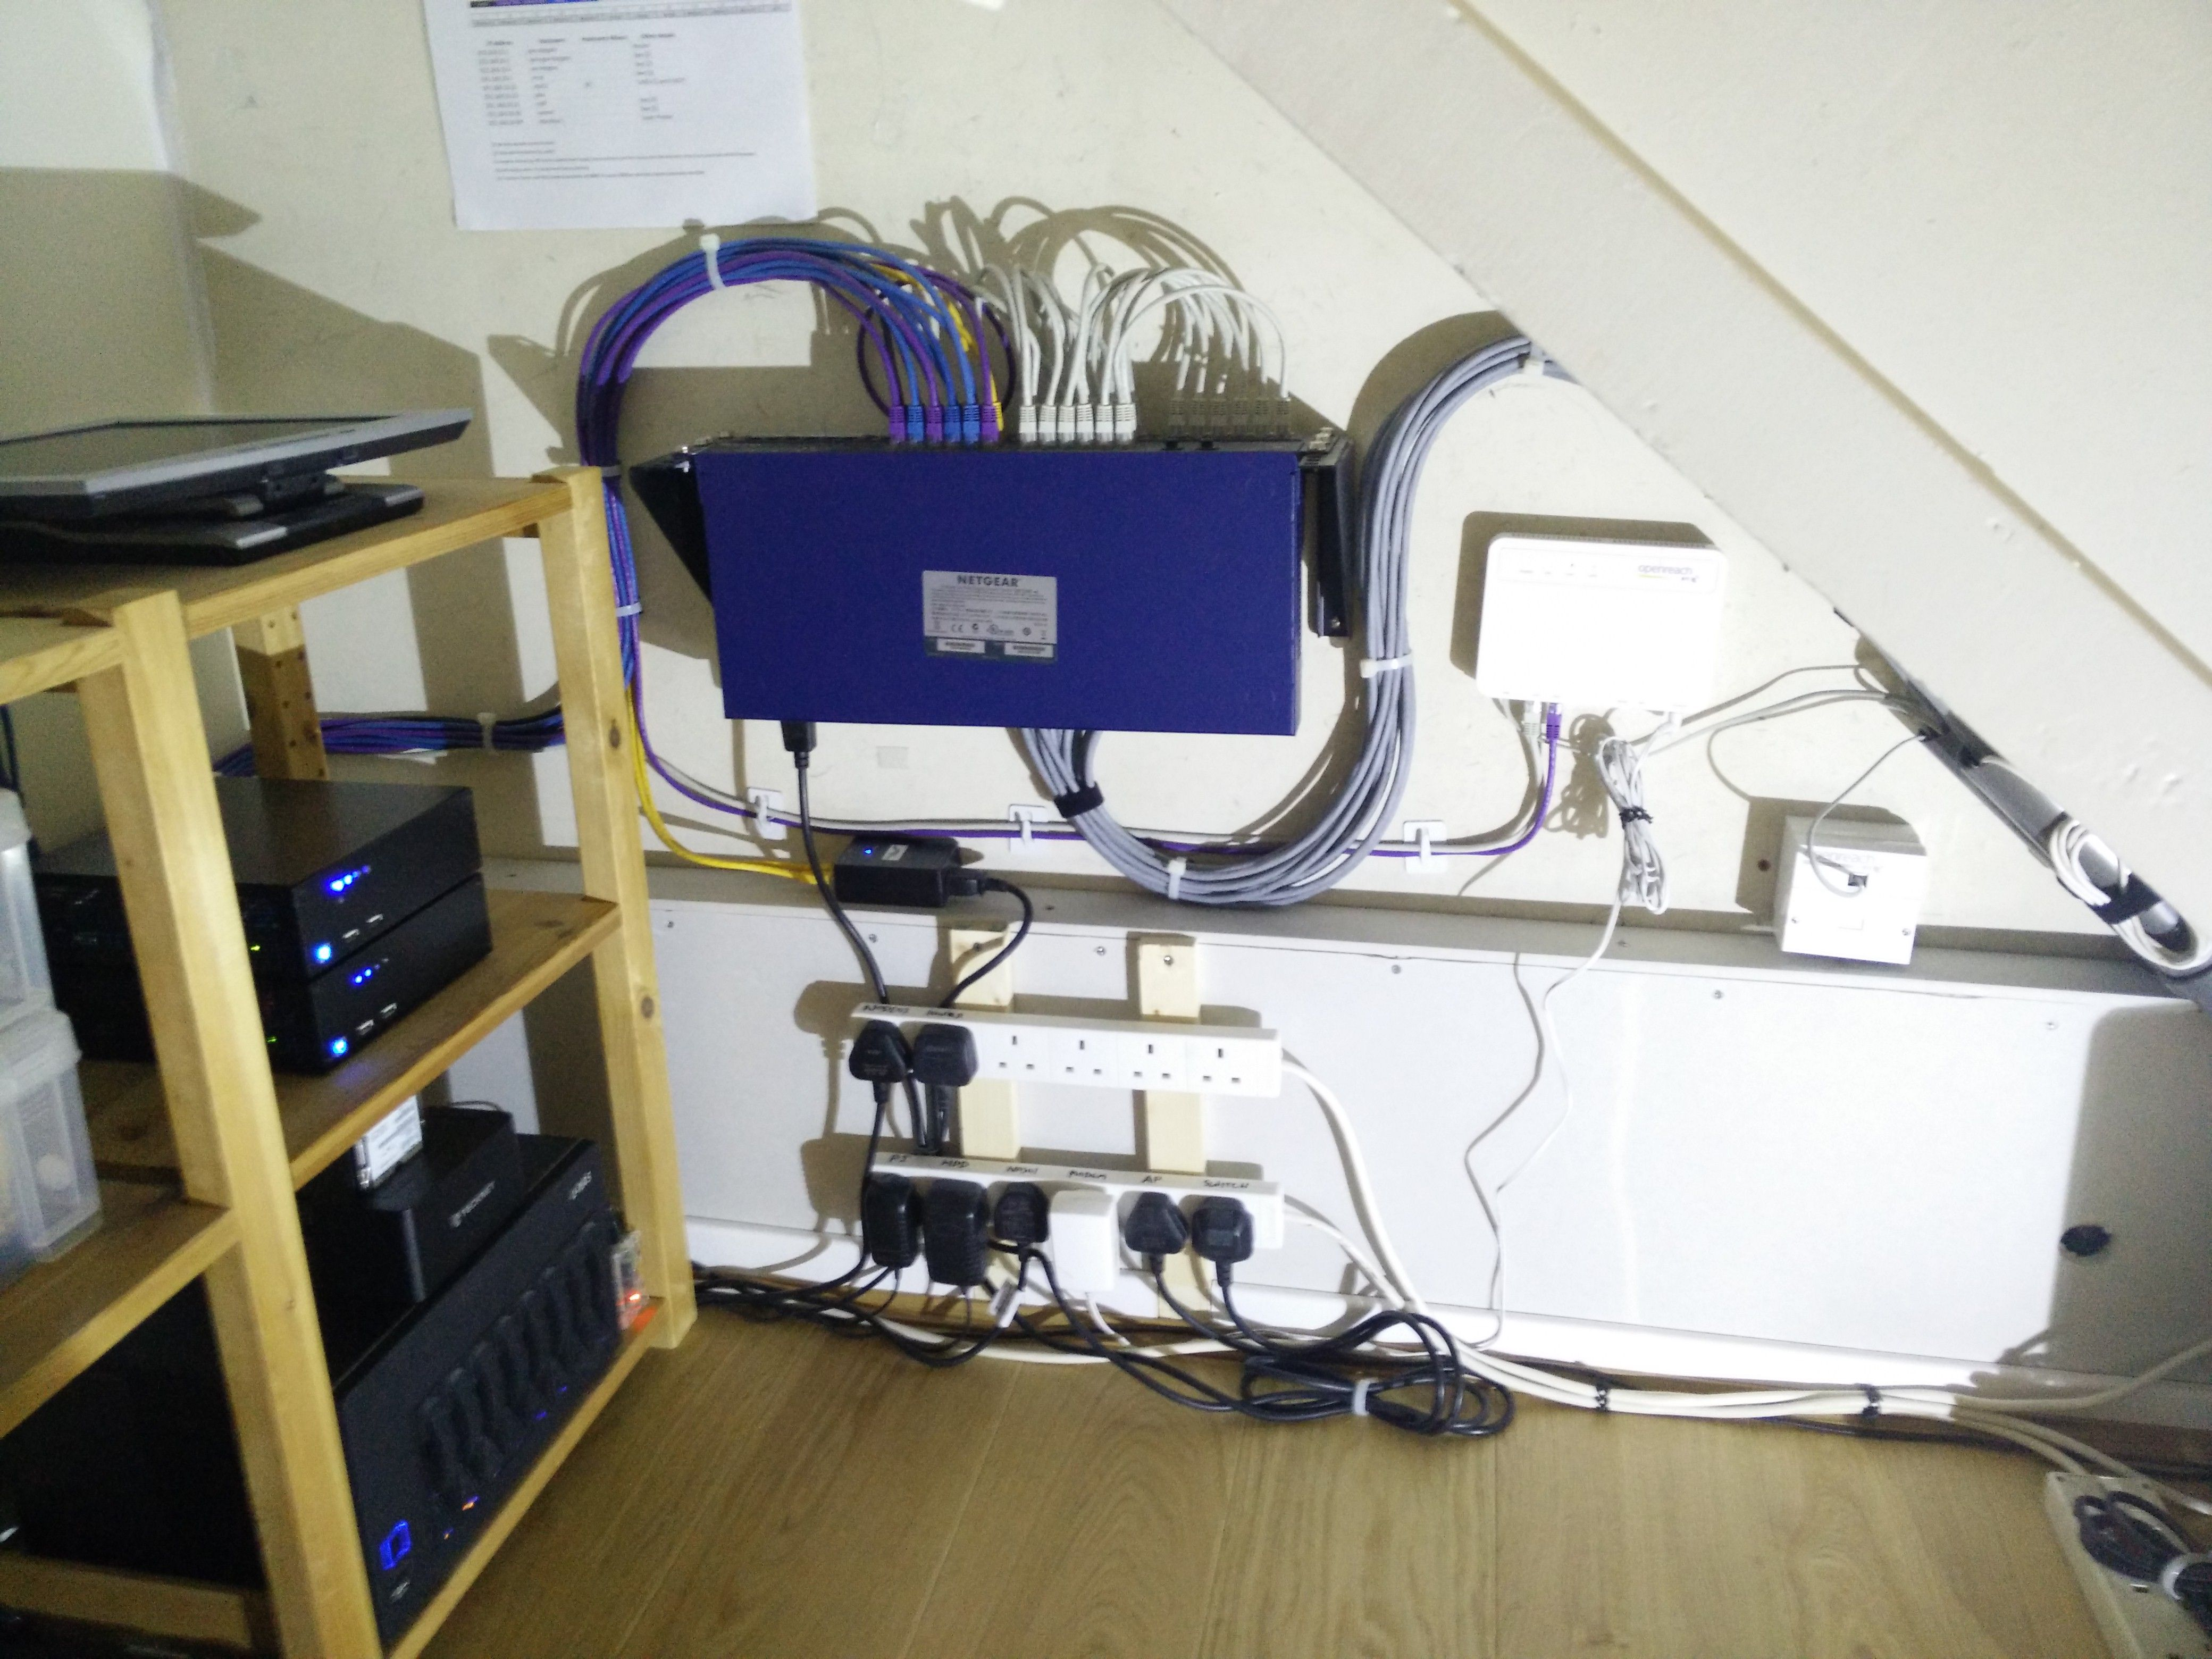 Not Enough Space For A Full Rack Setup So This Is As Close I Wiring Openreach Box